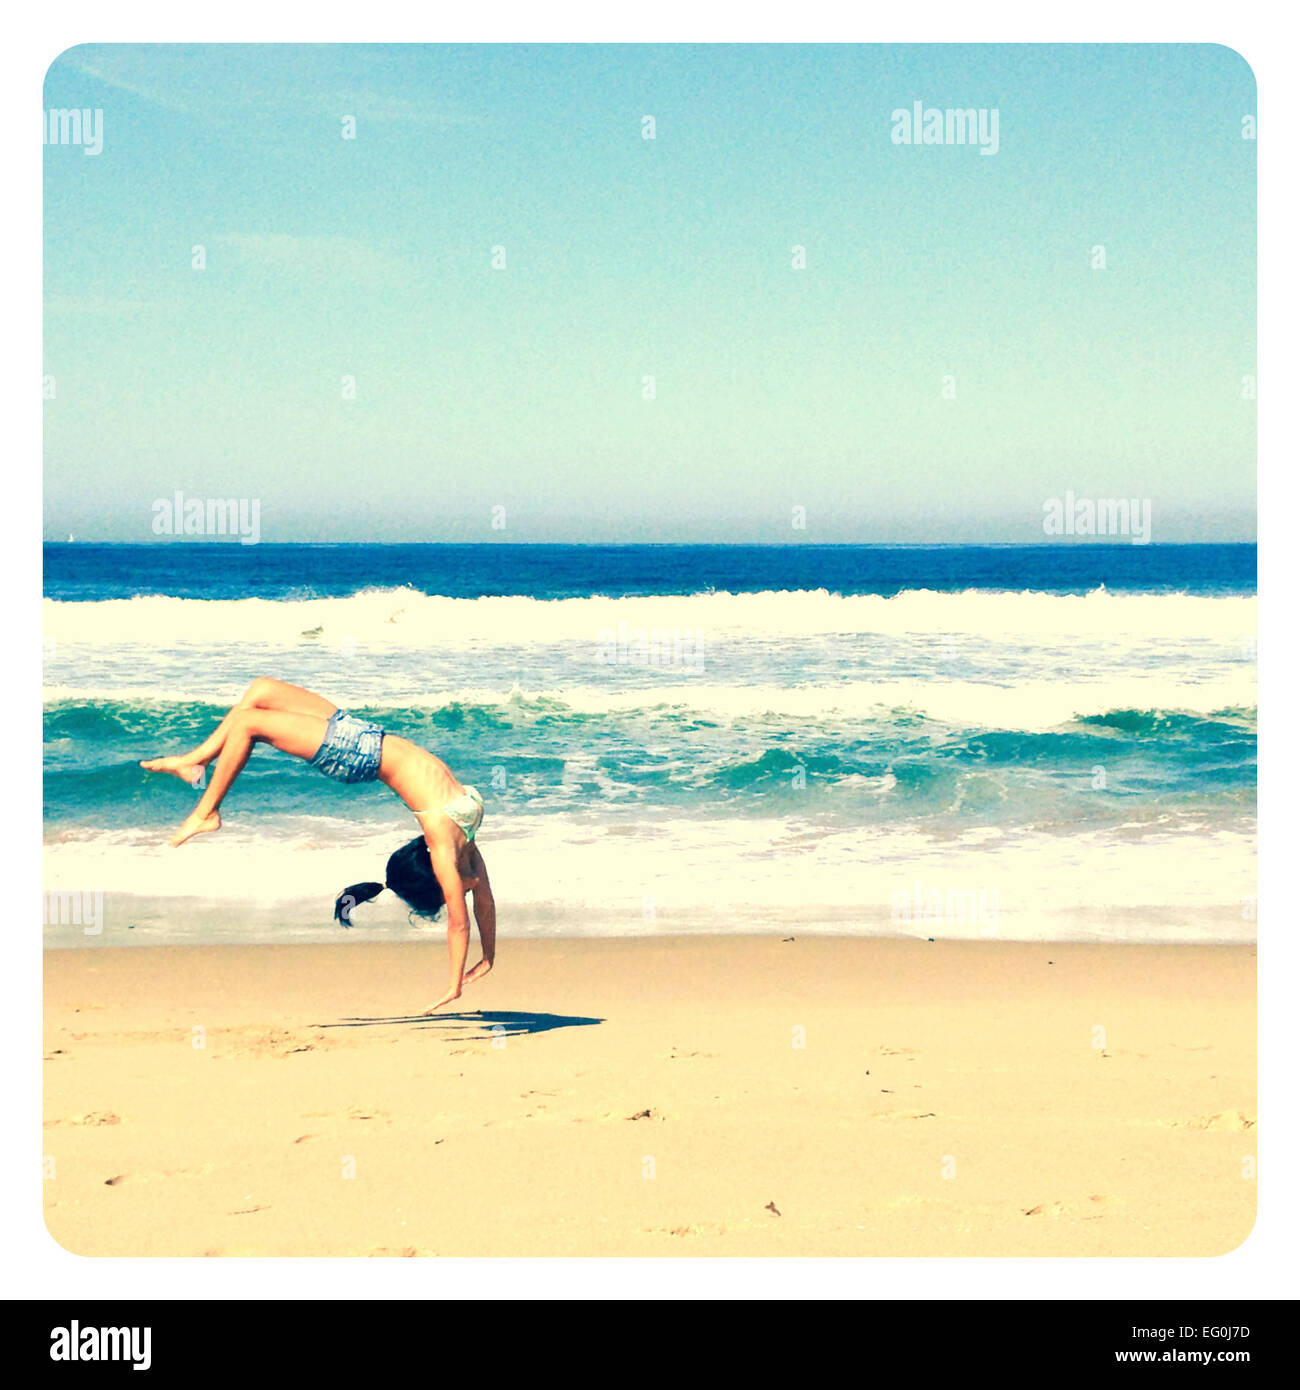 Girl doing a backflip on the beach - Stock Image